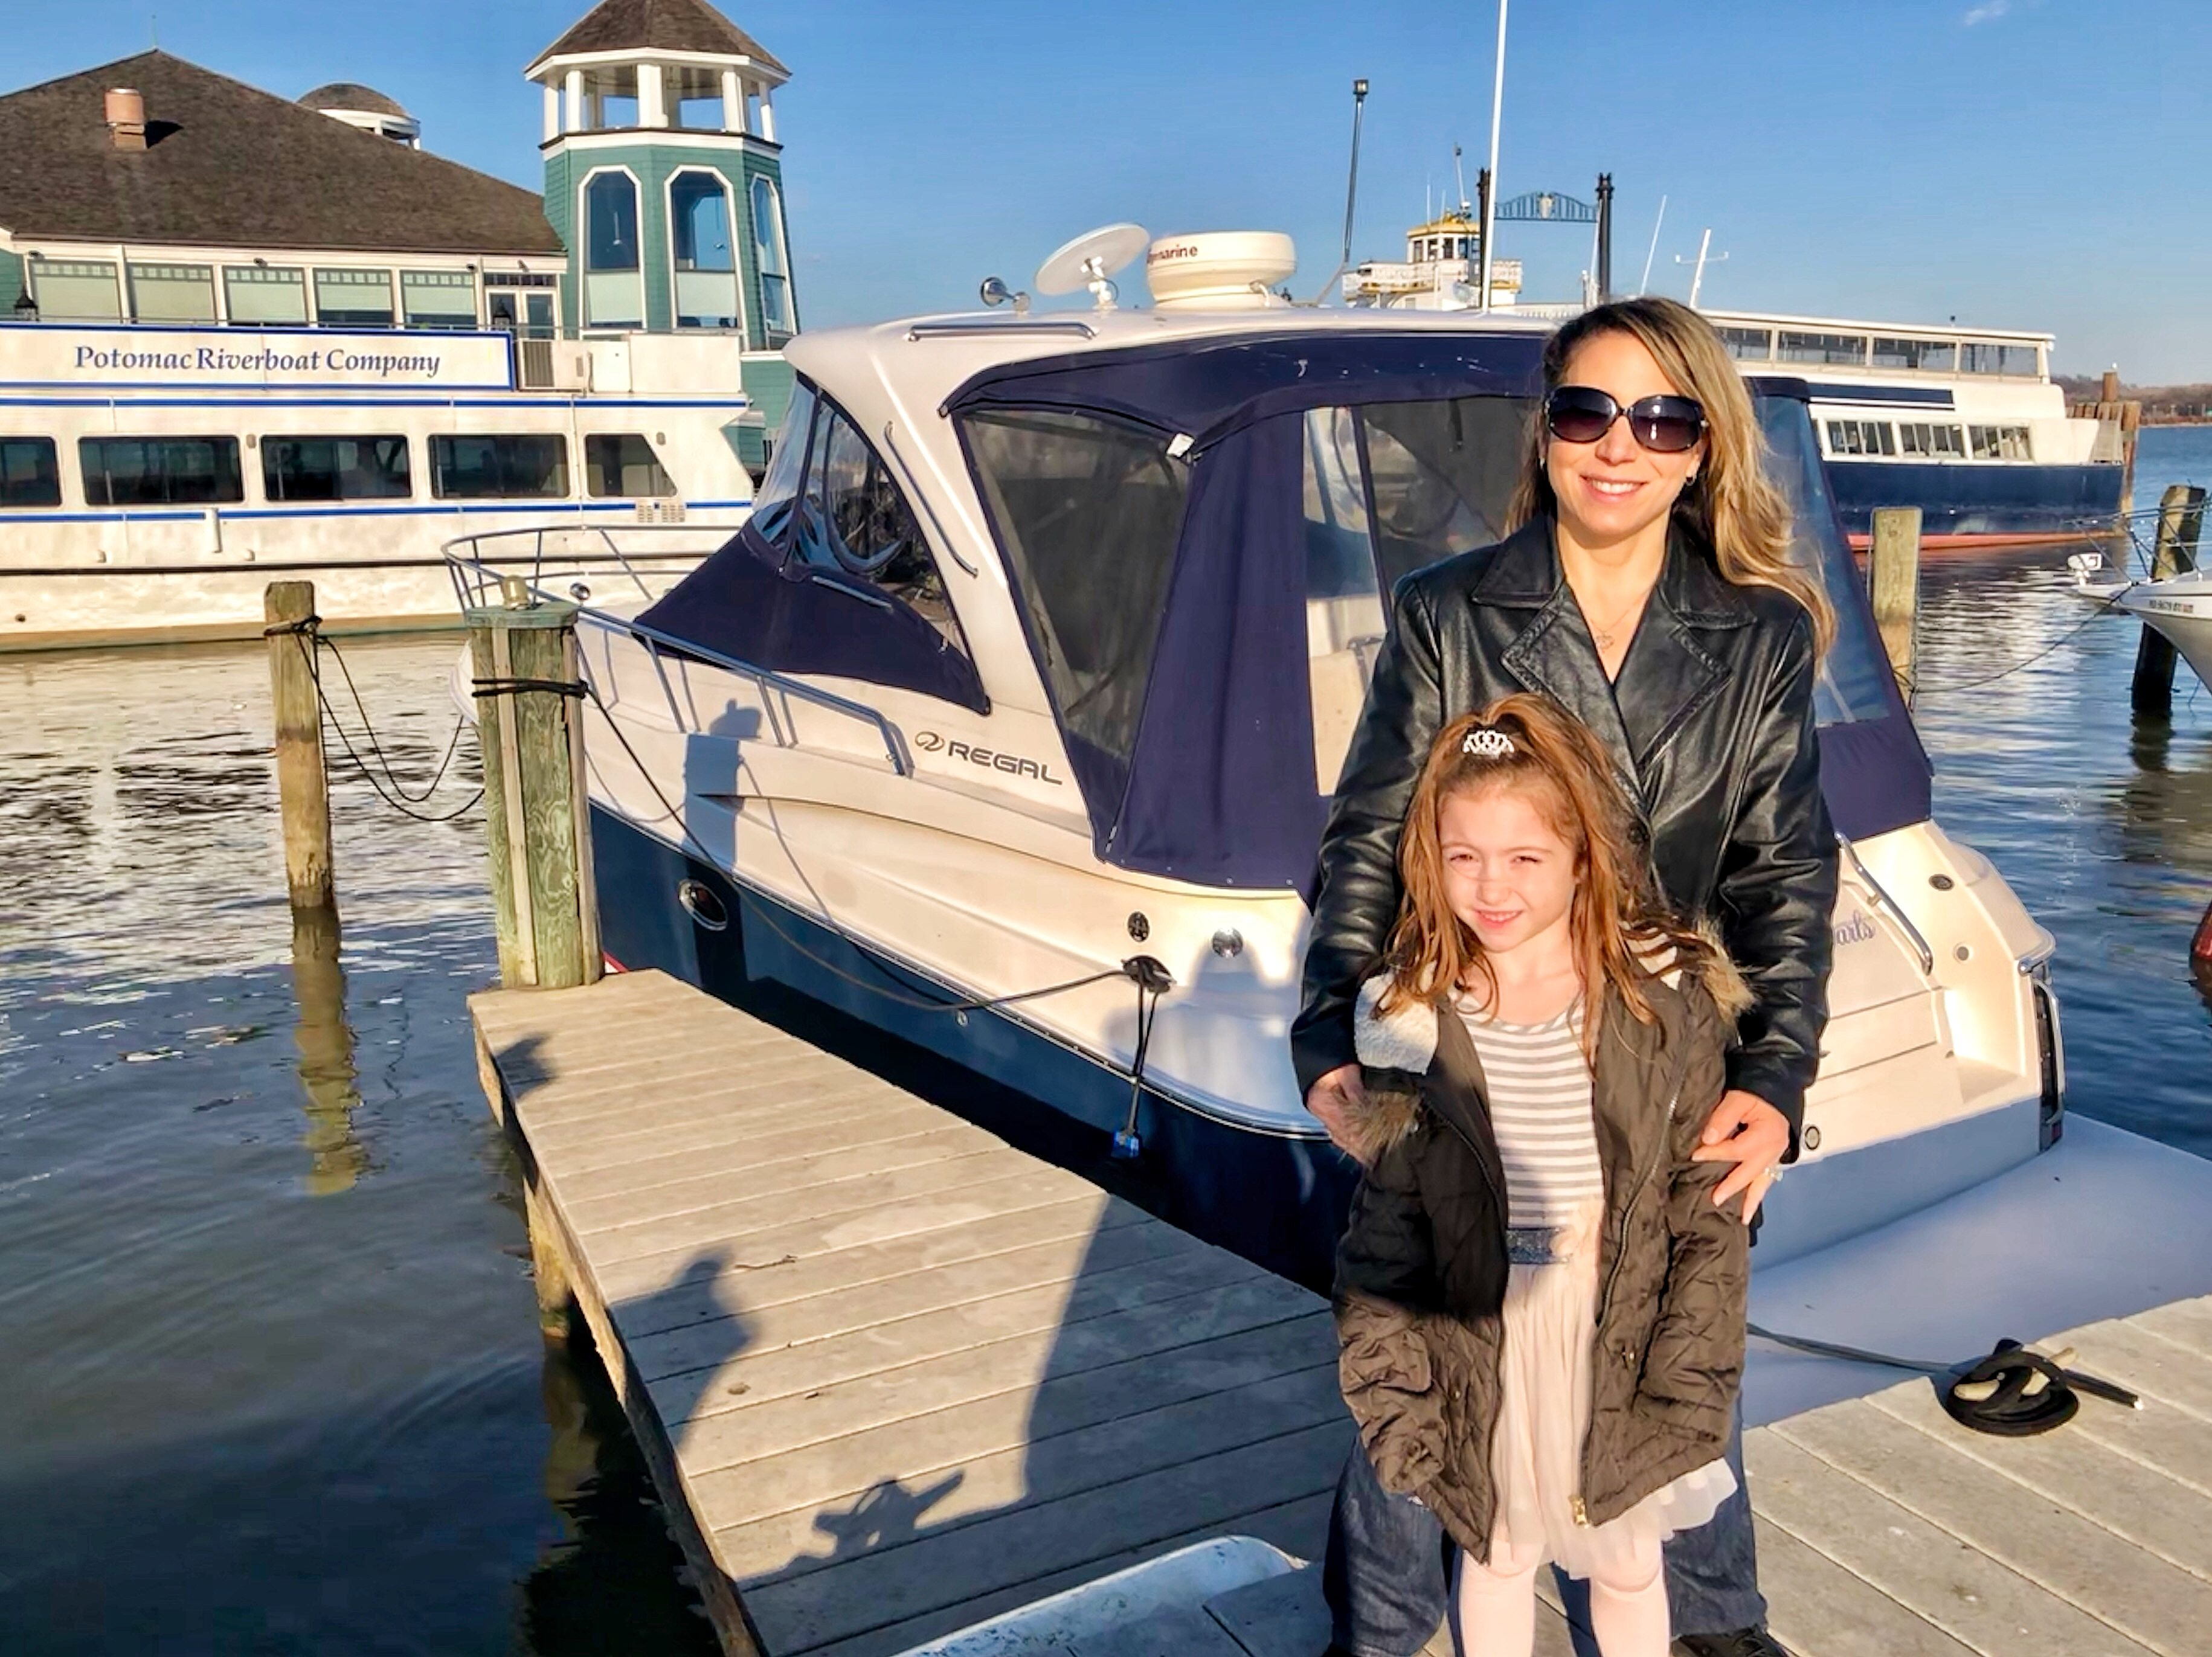 @funfitnessfam's cover photo for 'Epic Mommy and Me Day Trip in Old Town, Alexandria, Virginia'